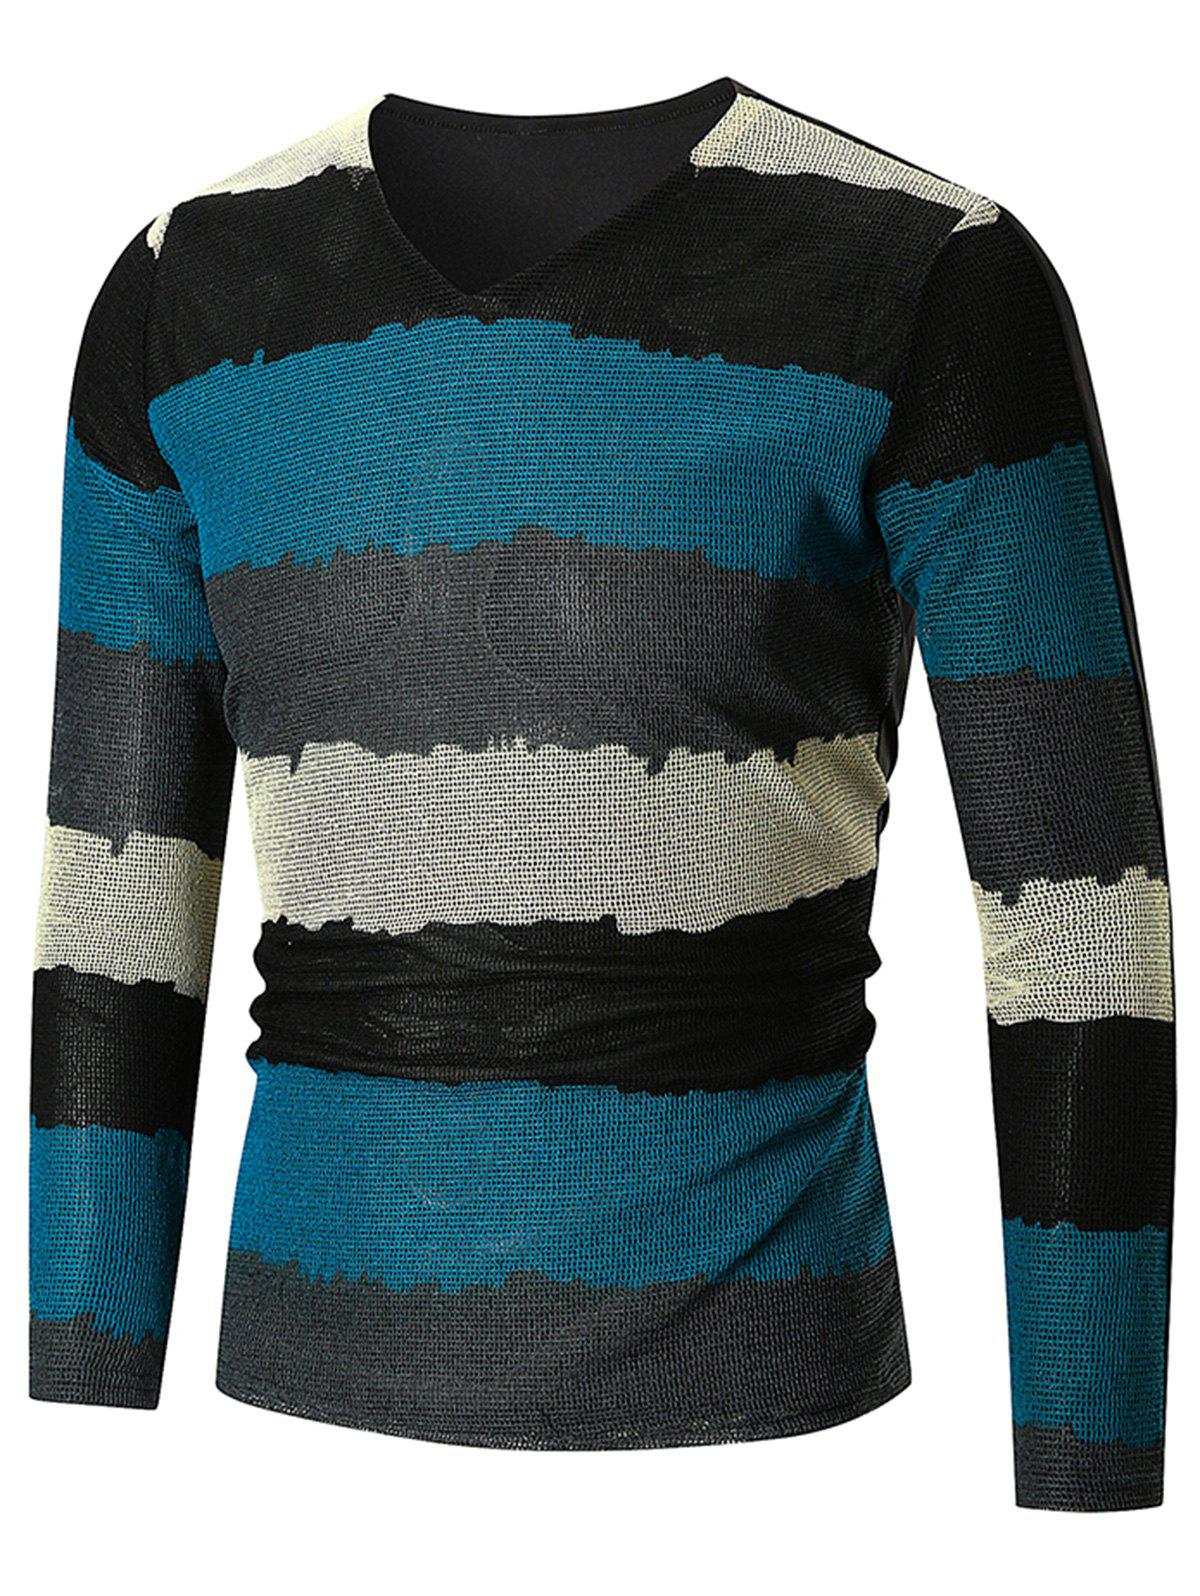 V Neck Wide Stripe Print Long Sleeve T-shirt - WINDOWS BLUE 3XL